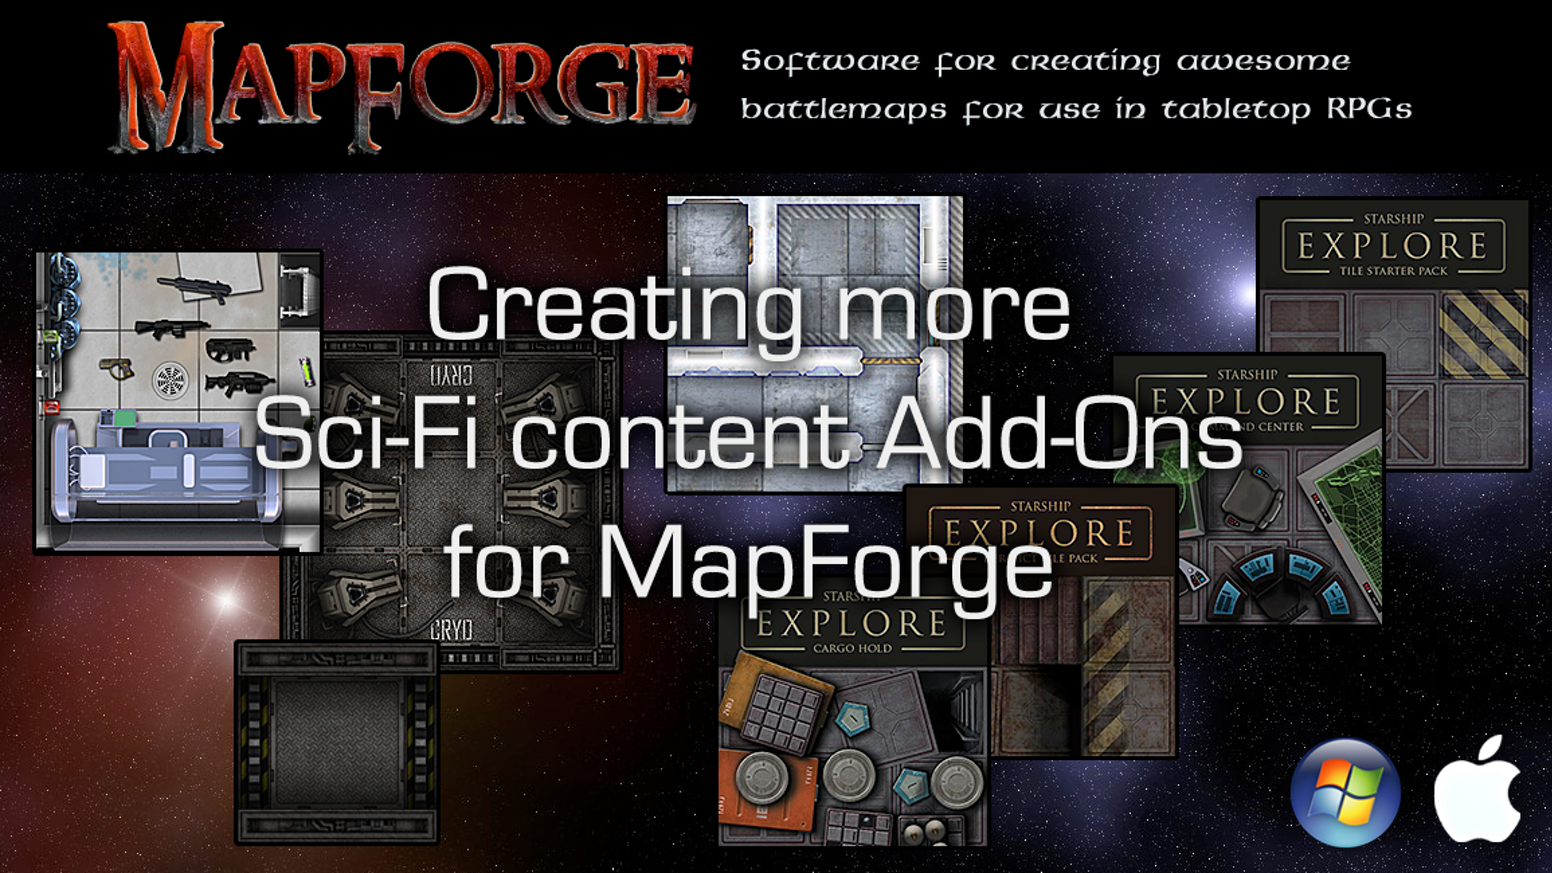 More Sci-Fi content Add-Ons for MapForge map-making ... on map google, map of appalachia, map from point to point, map london south kensington, map directions point to point, map of all the states, map of negros philippines, map travel, map of kensington san diego, map of the european alps, map ark, map of merrimack valley massachusetts, map data, map math, map features, map guide, map millbrook al, map of london 1880, map language, map of boulder colorado and surrounding area,